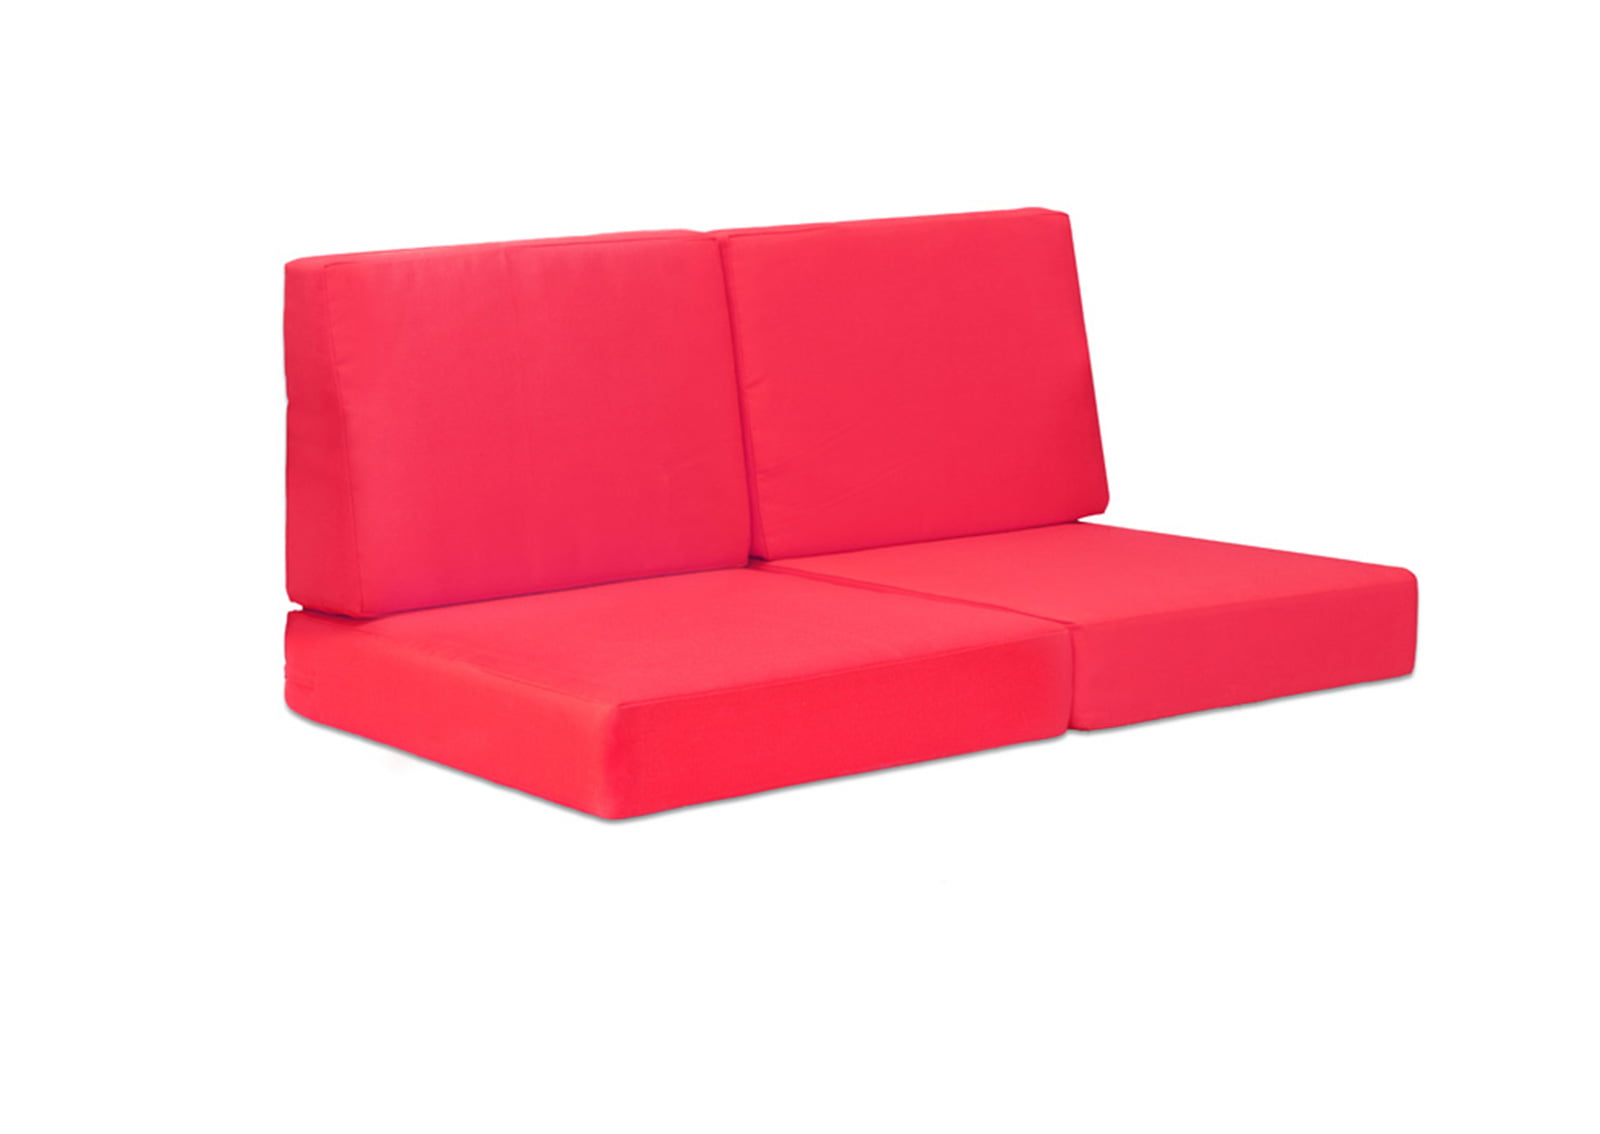 Cosmopolitan Sofa Cushions Red FurnishPlus